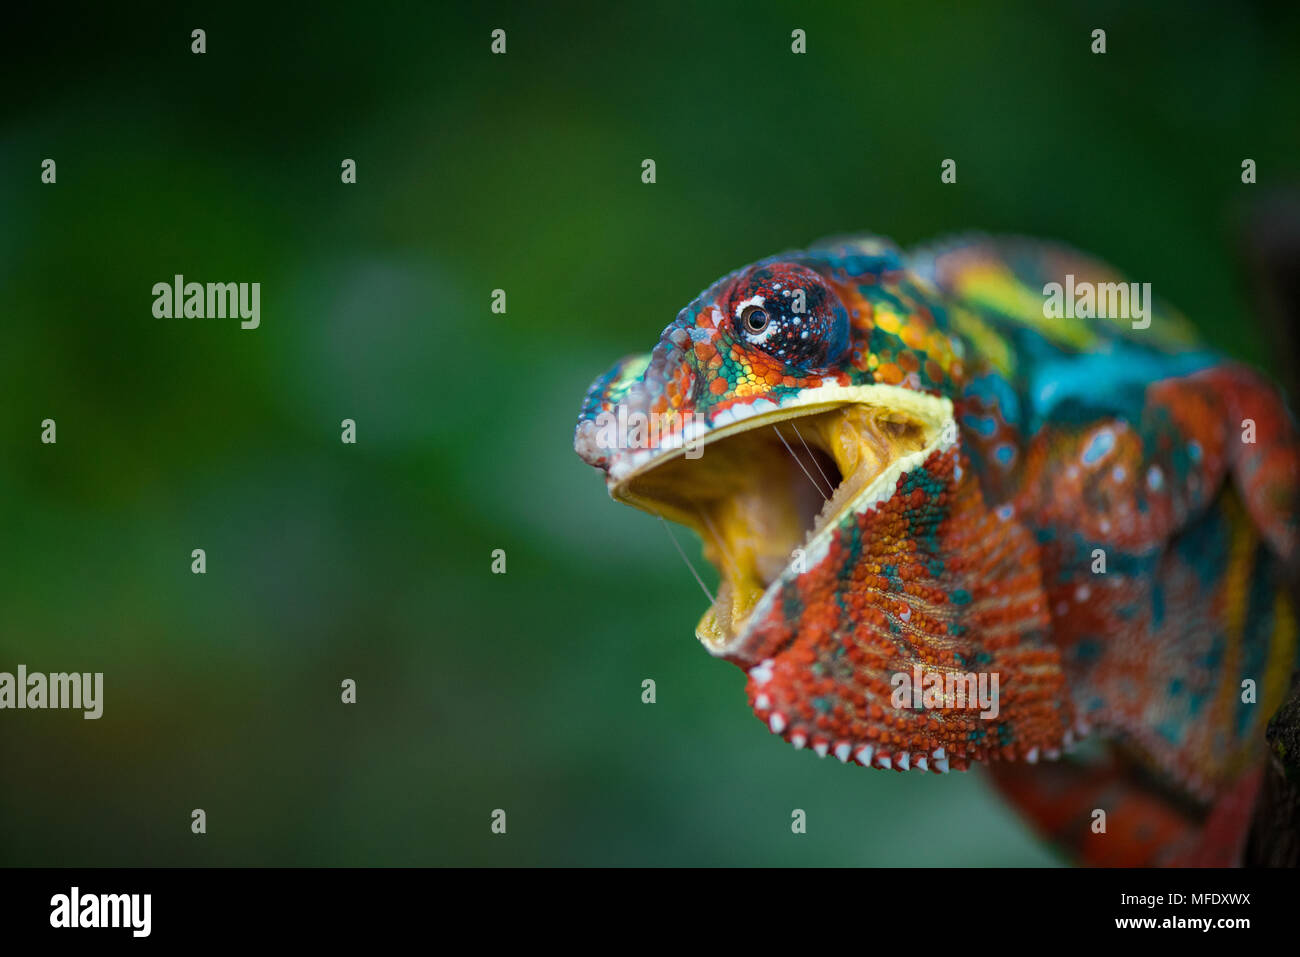 Panther chameleon with bright colors / chameleon with open mount / angry chameleon / hissing / Ambilobe / Furcifer pardalis - Stock Image